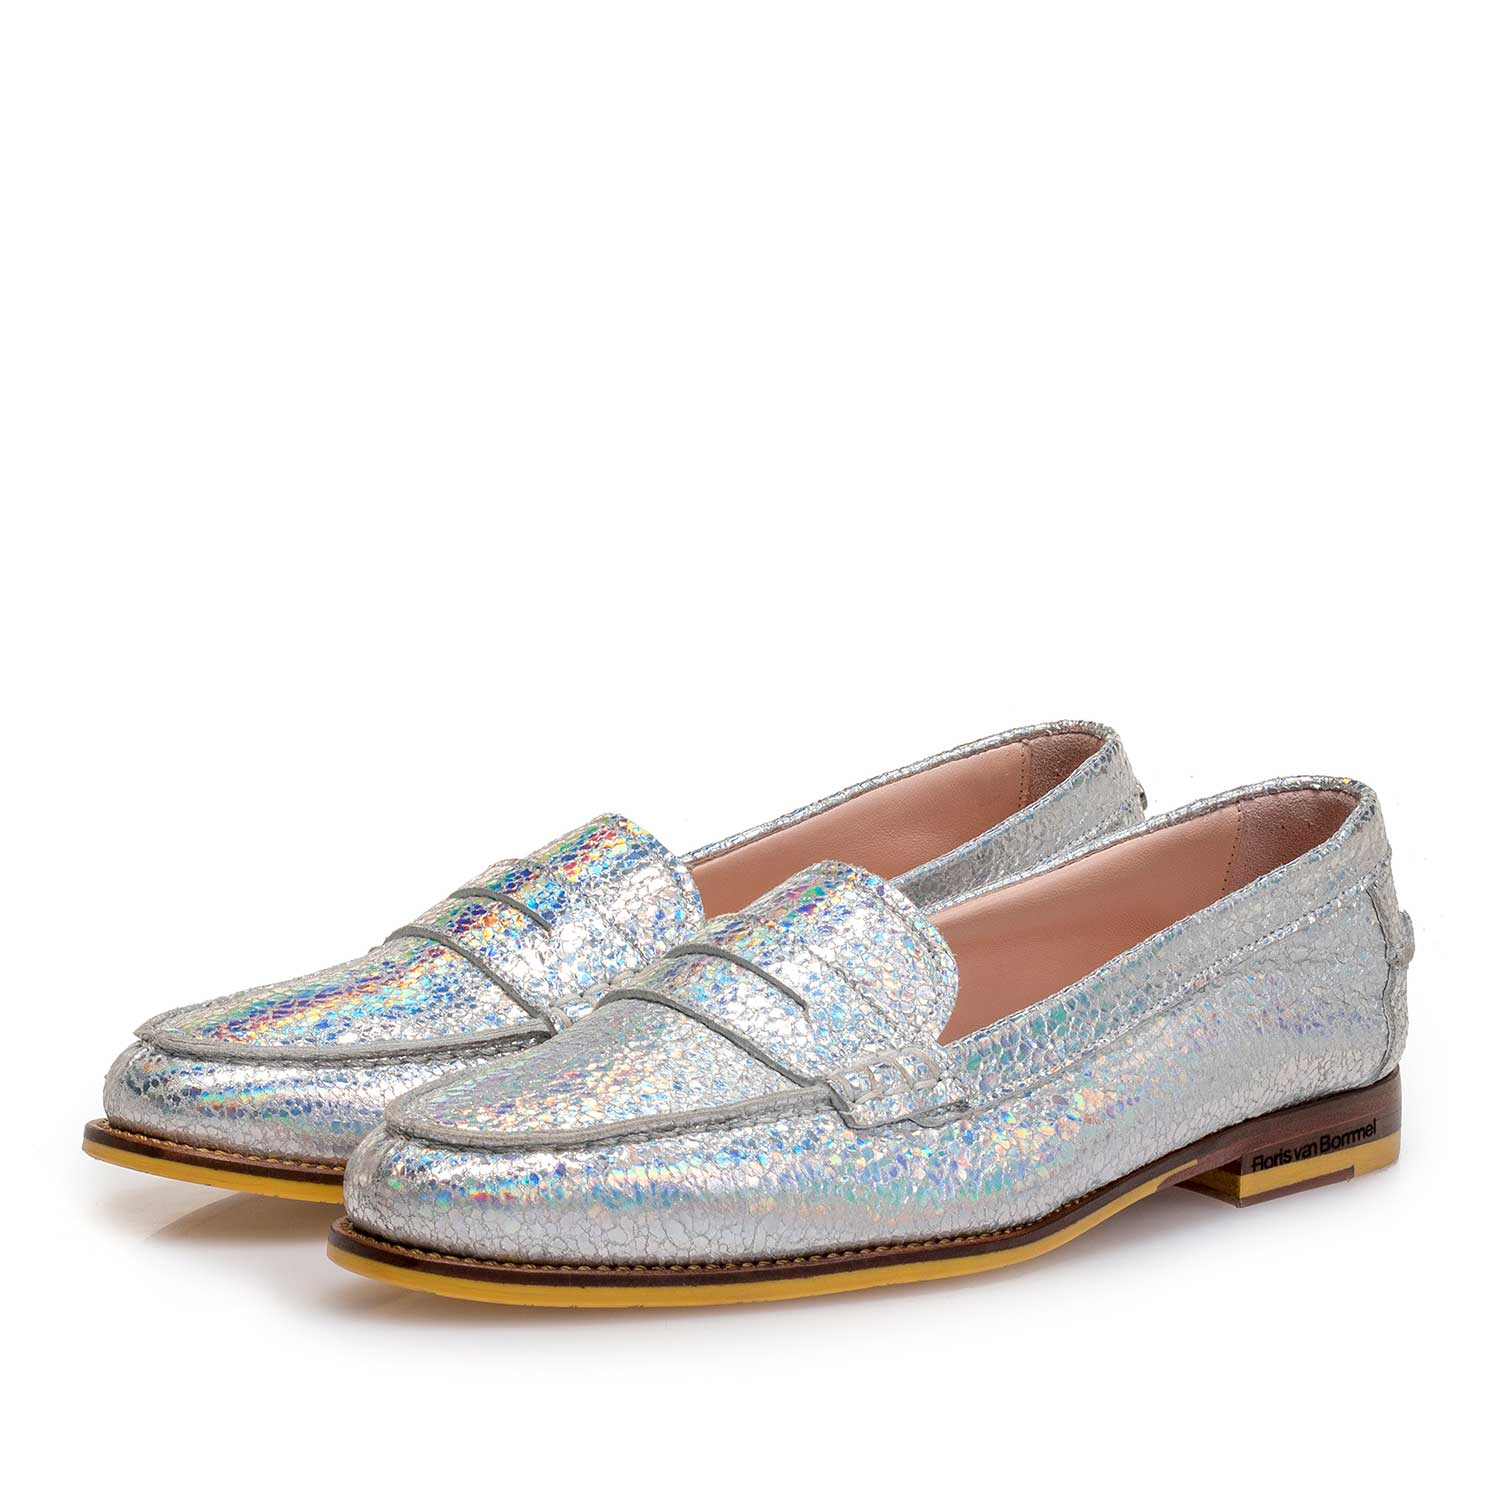 85409/00 - Silver metallic leather loafer with craquelé effect